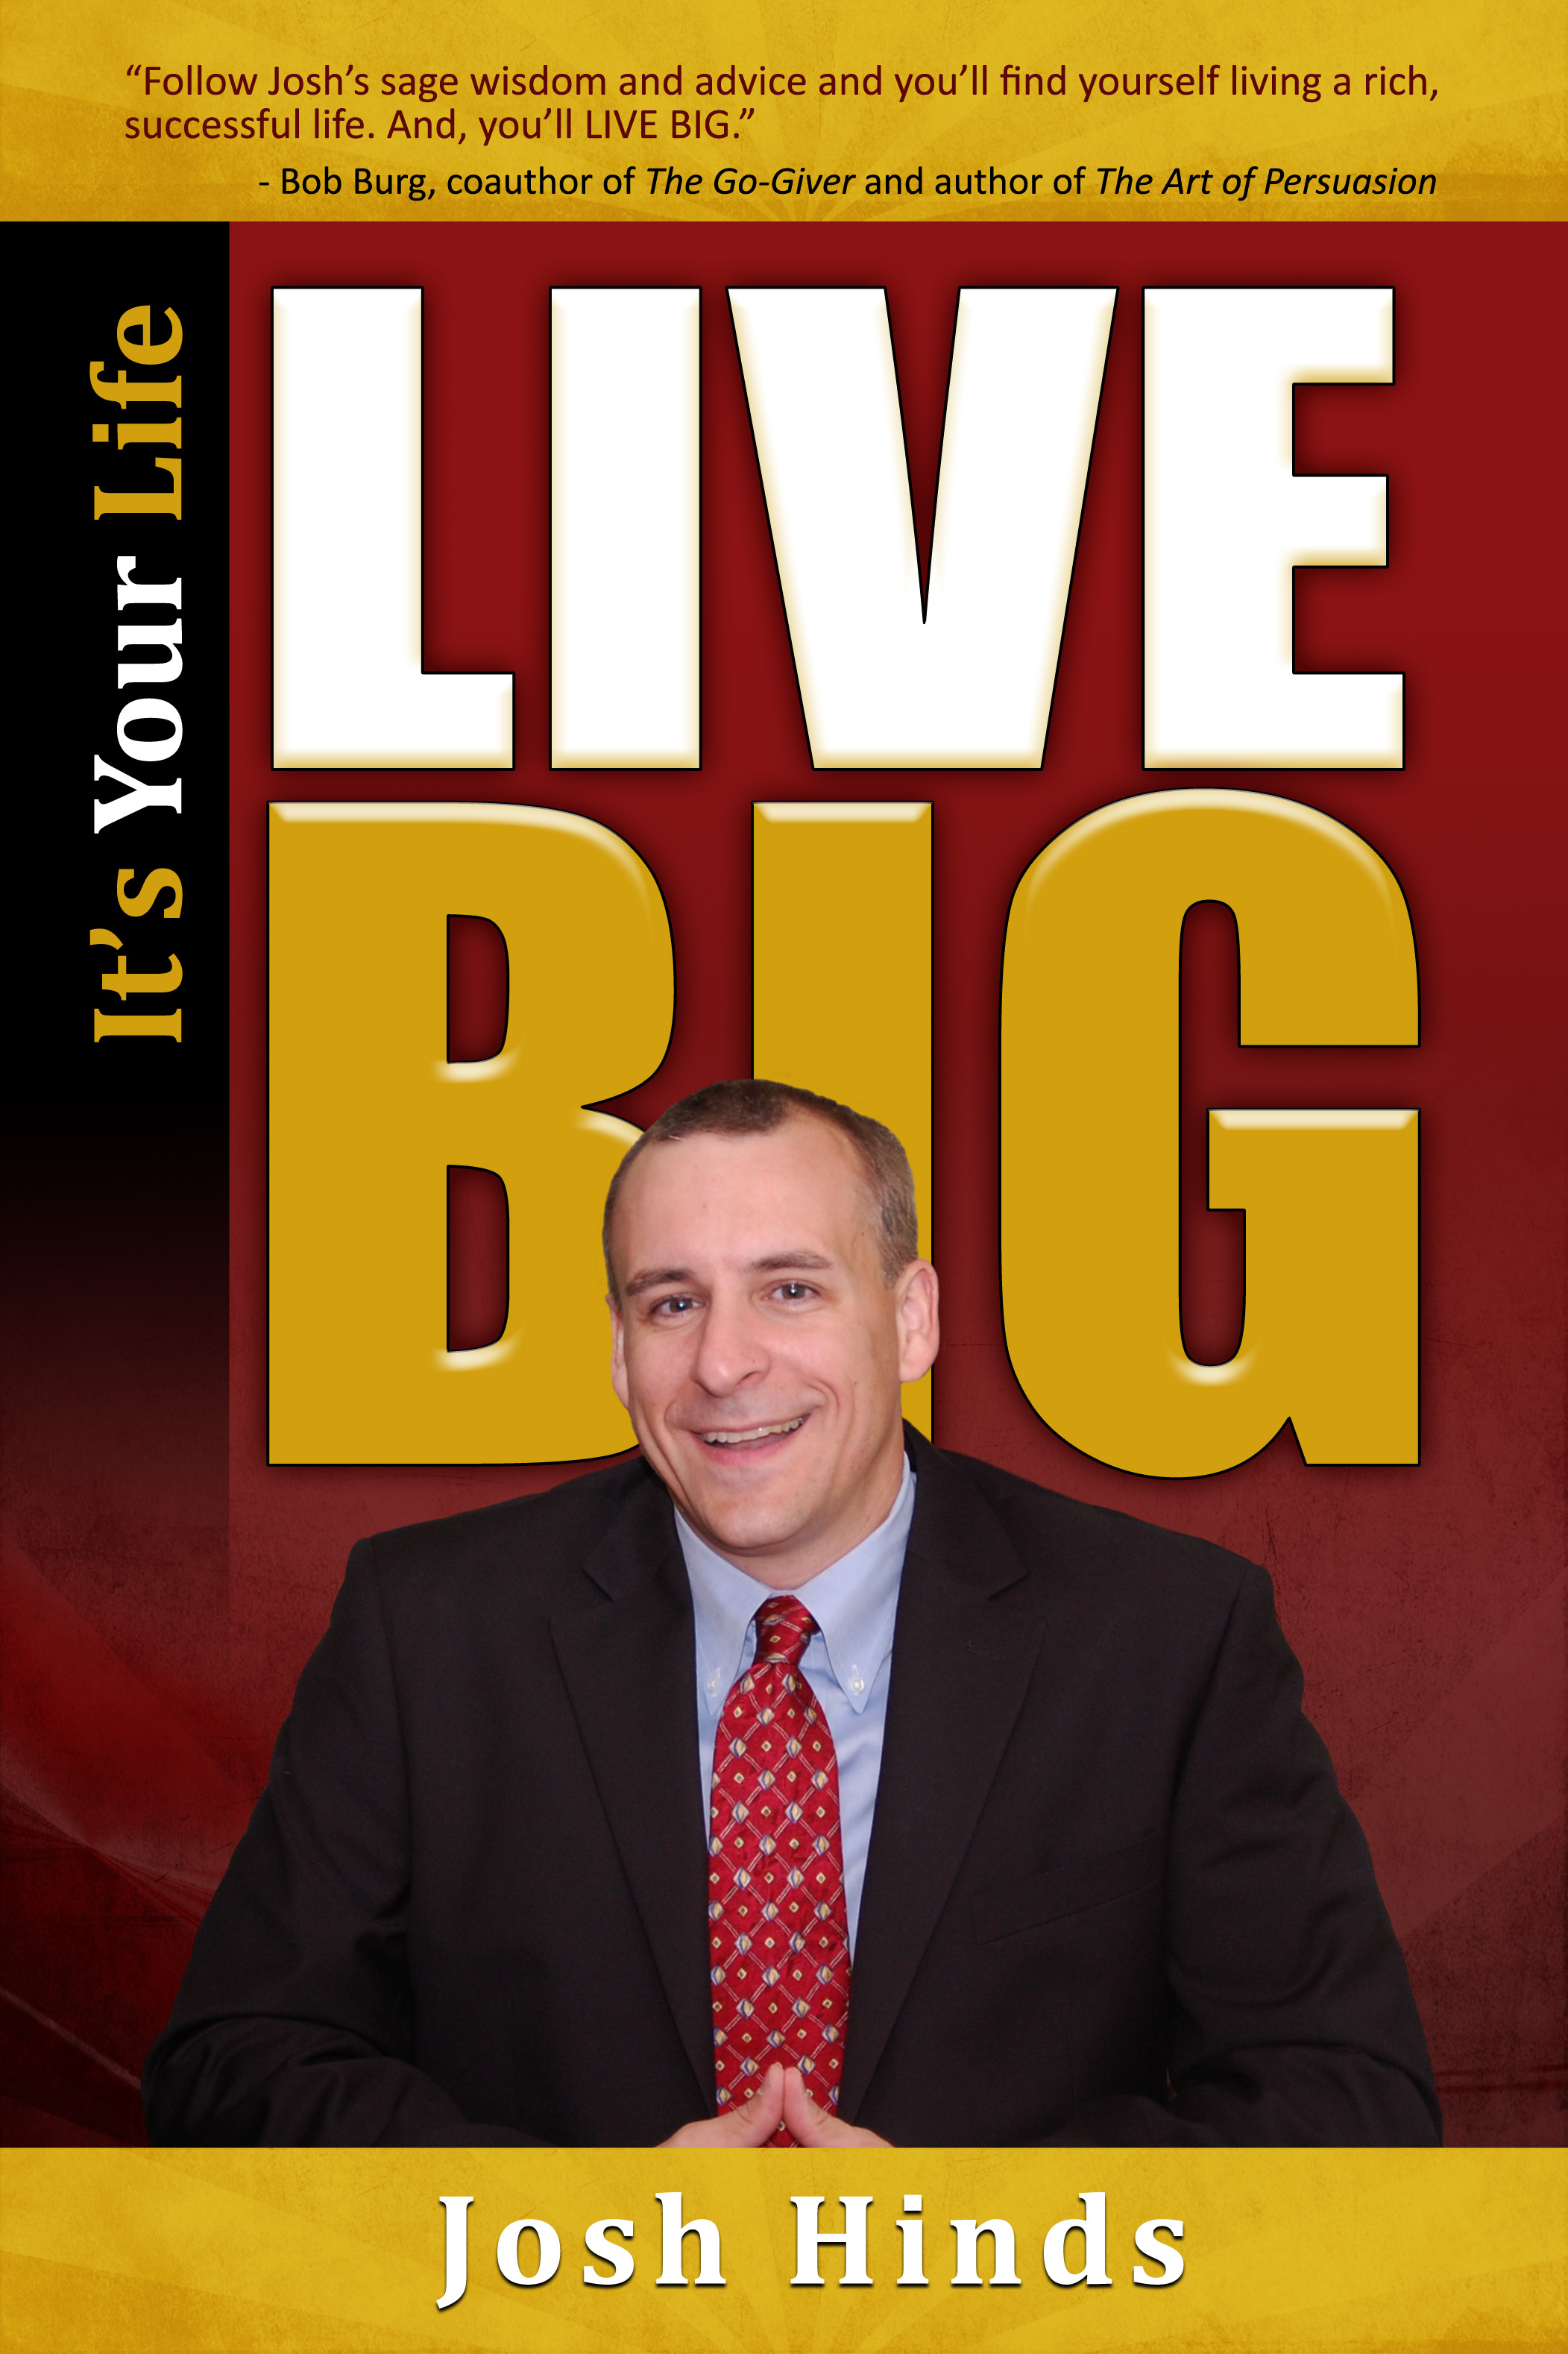 It's Your Life Live Big - Josh Hinds